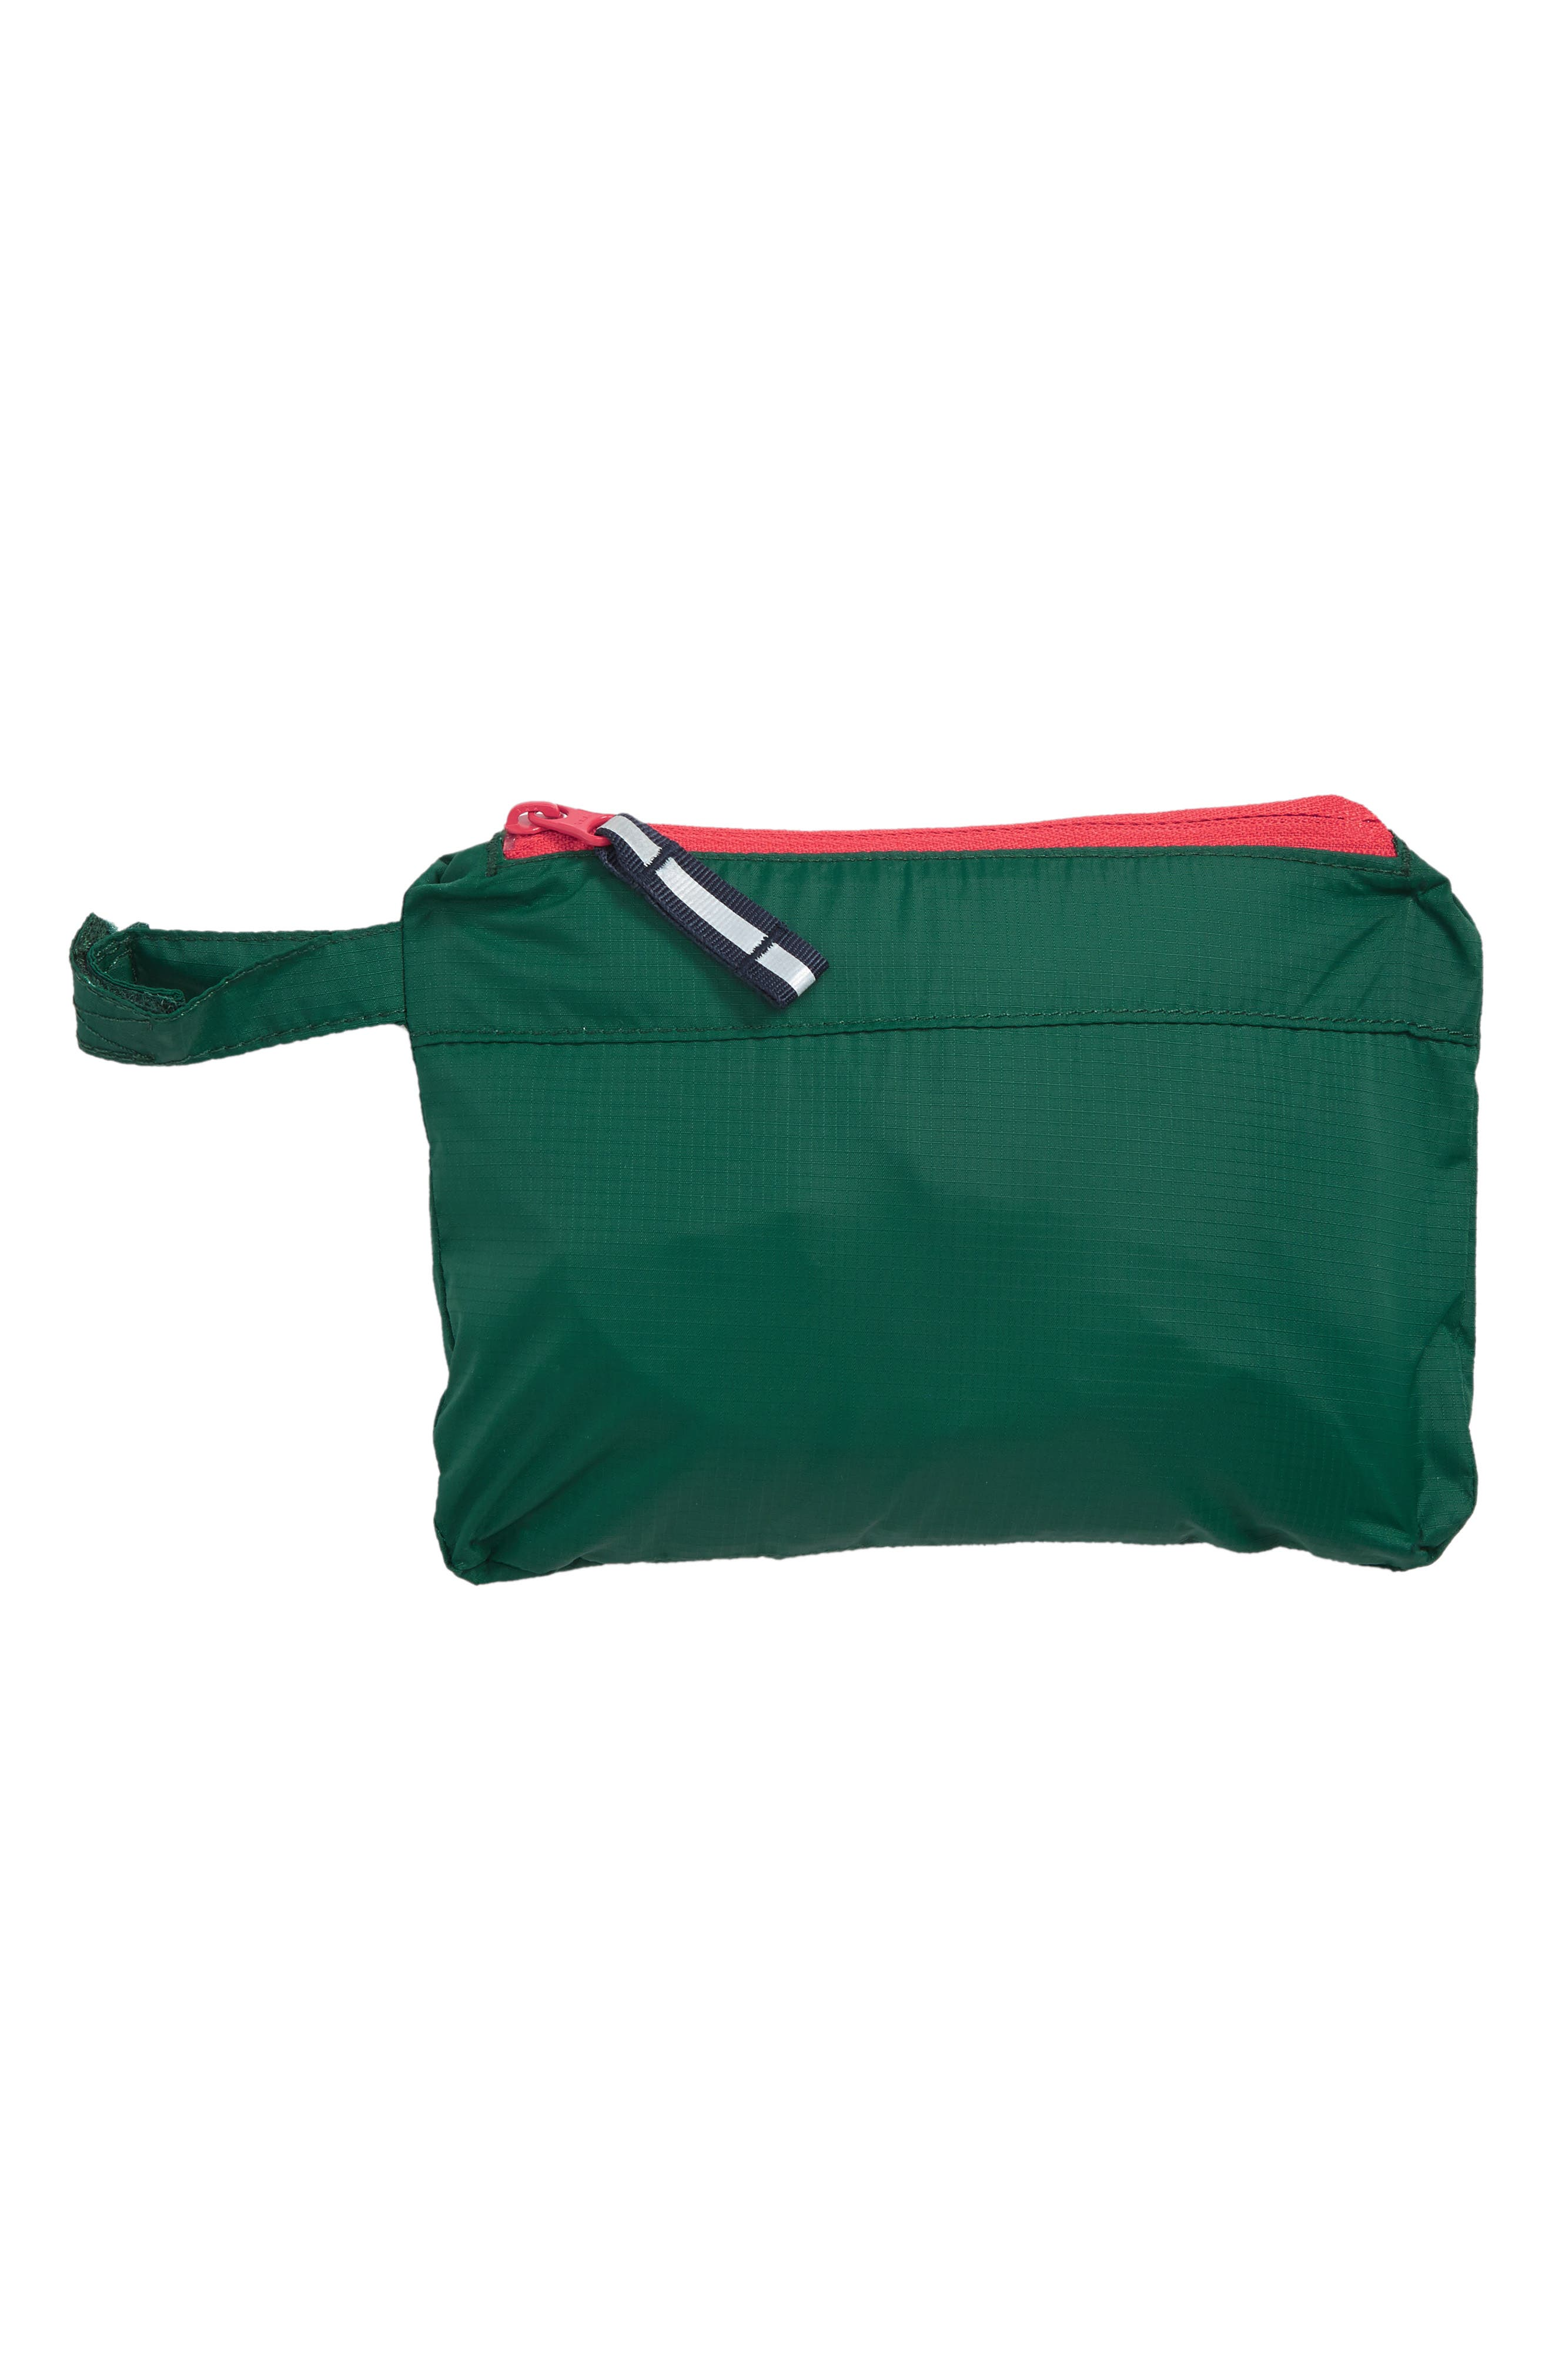 Packaway Rain Jacket,                             Alternate thumbnail 2, color,                             SCOTTS PINE GREEN/ SALSA RED